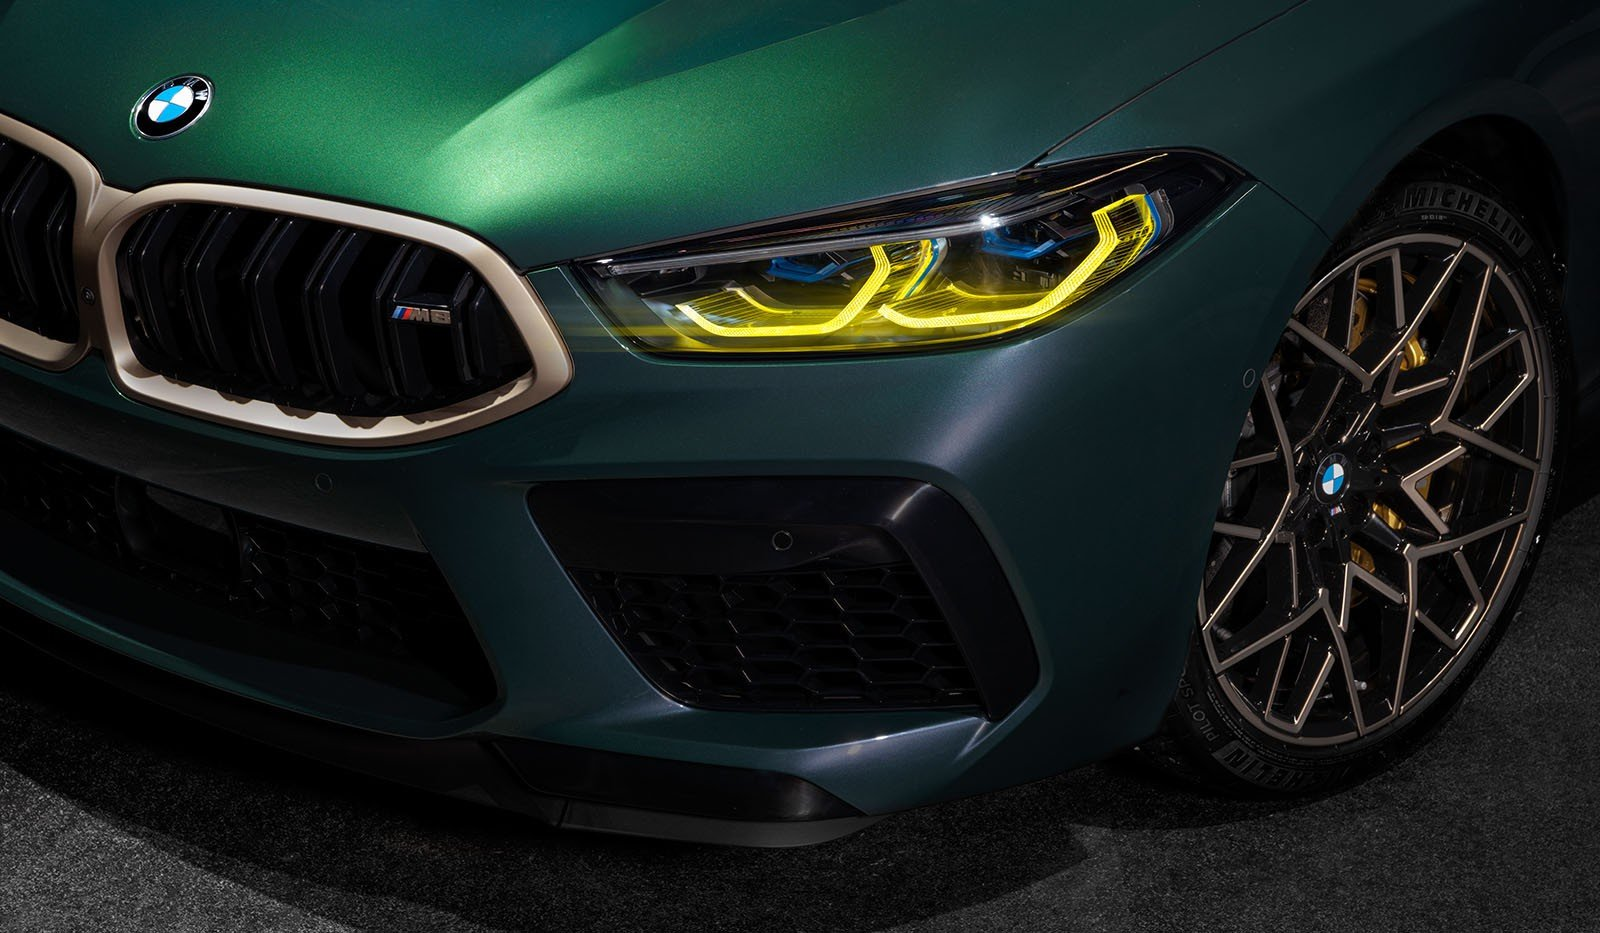 Perfect storm BMW M8 Gran Coup First Edition 1600x933